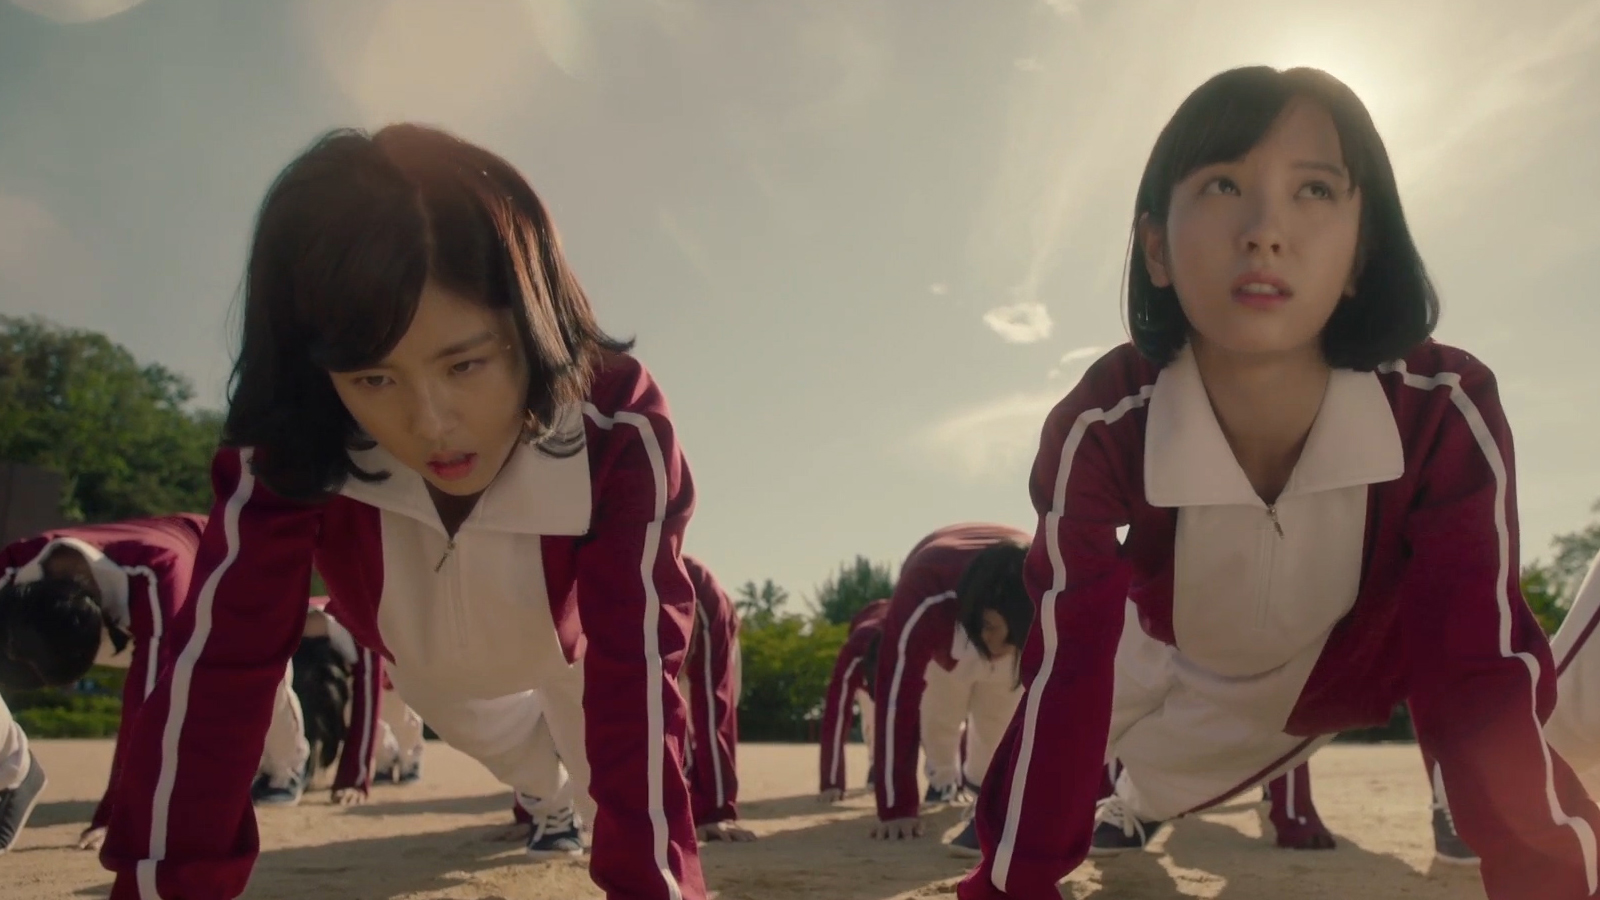 Trailer: Girls' Generation 1979